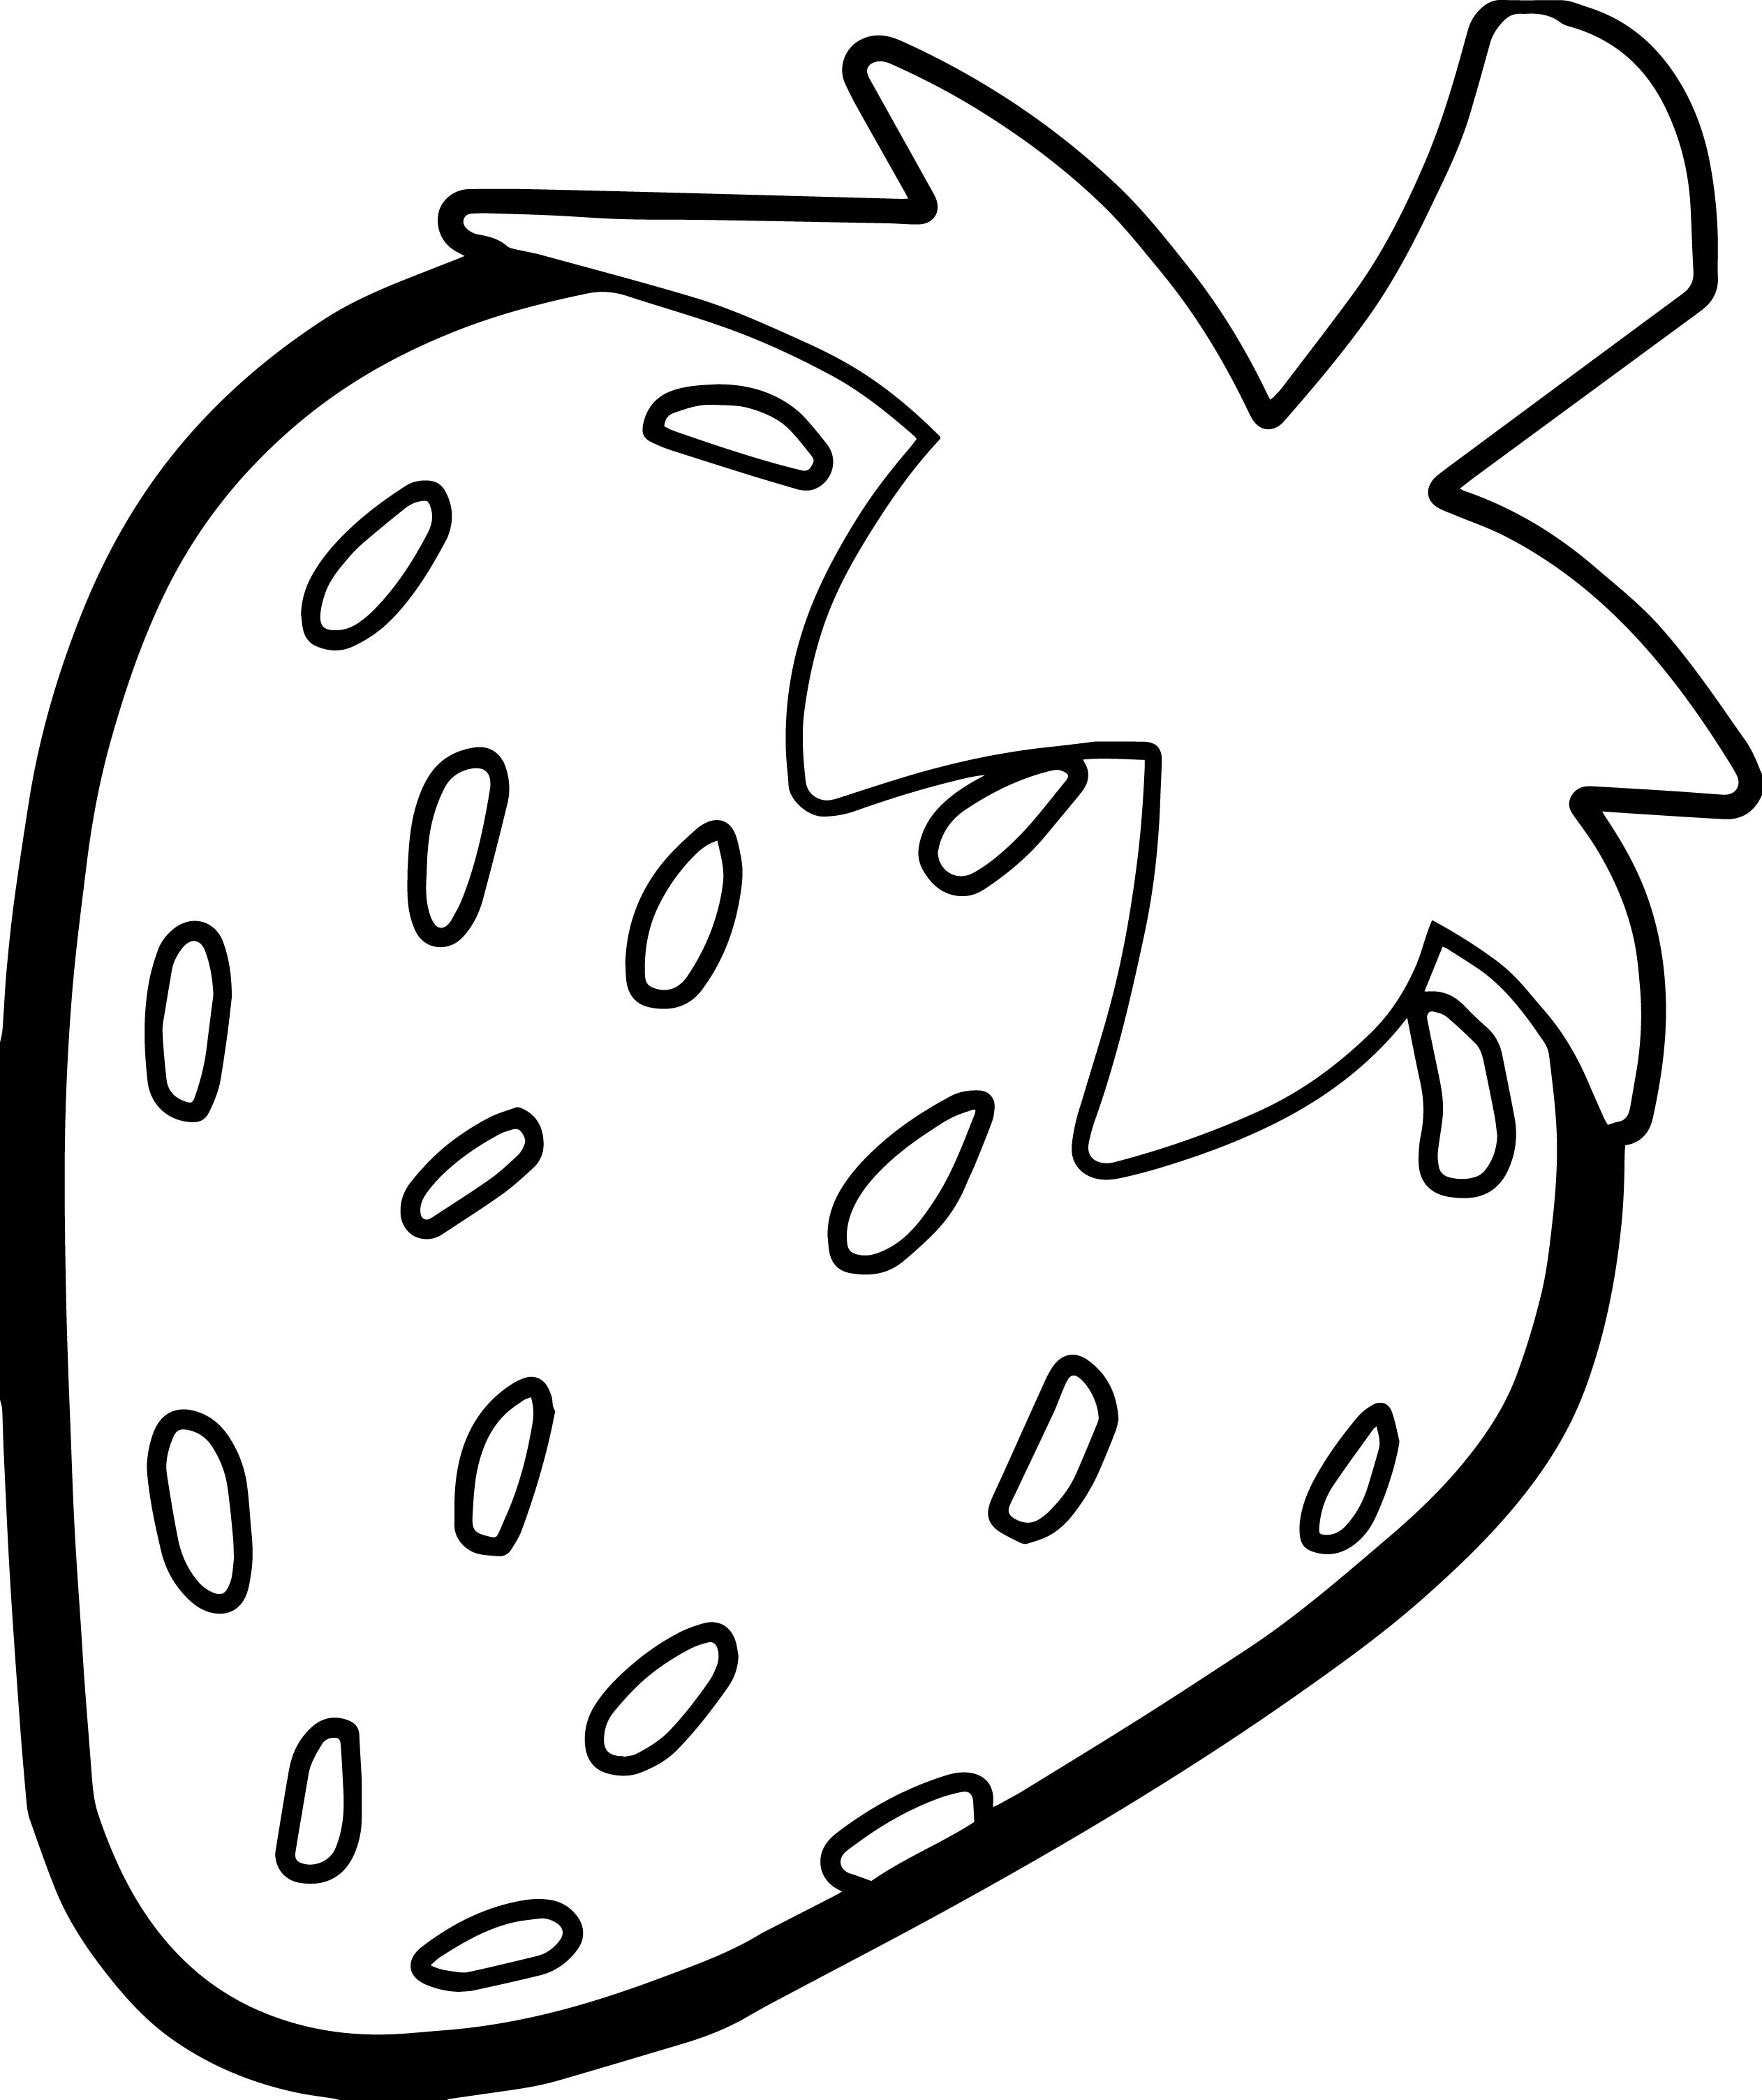 2524x3009 Best Of Outline Coloring Pages Bass Fish Outline Coloring Pages